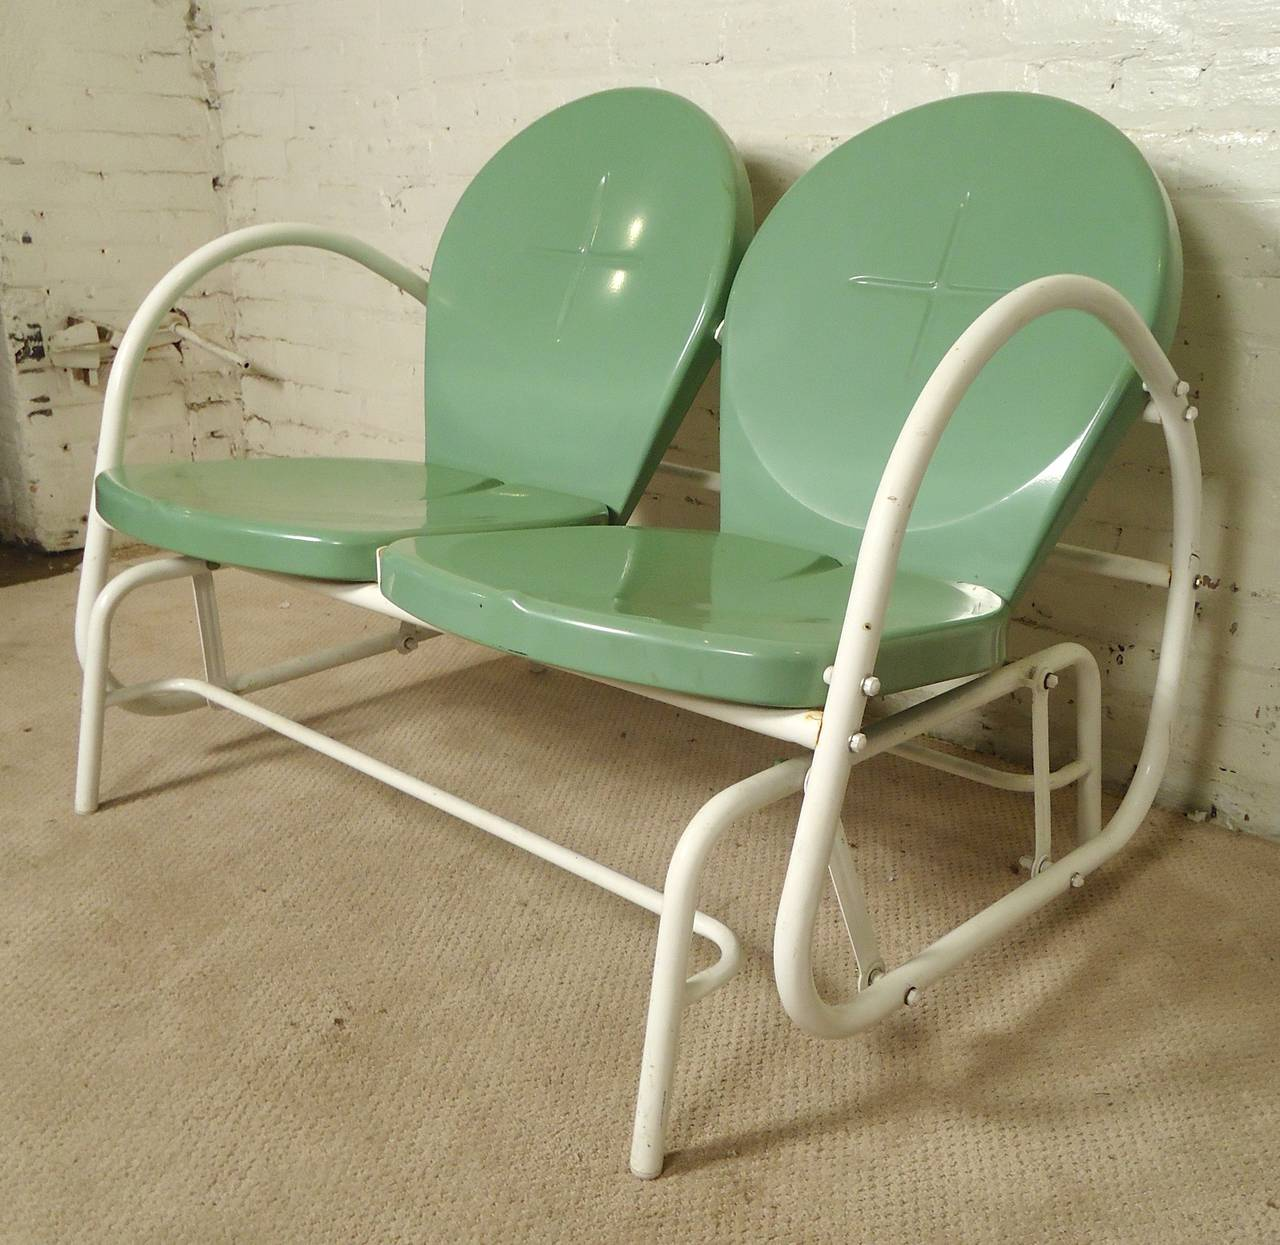 Mid Century Modern Patio Glider For Sale at 1stdibs